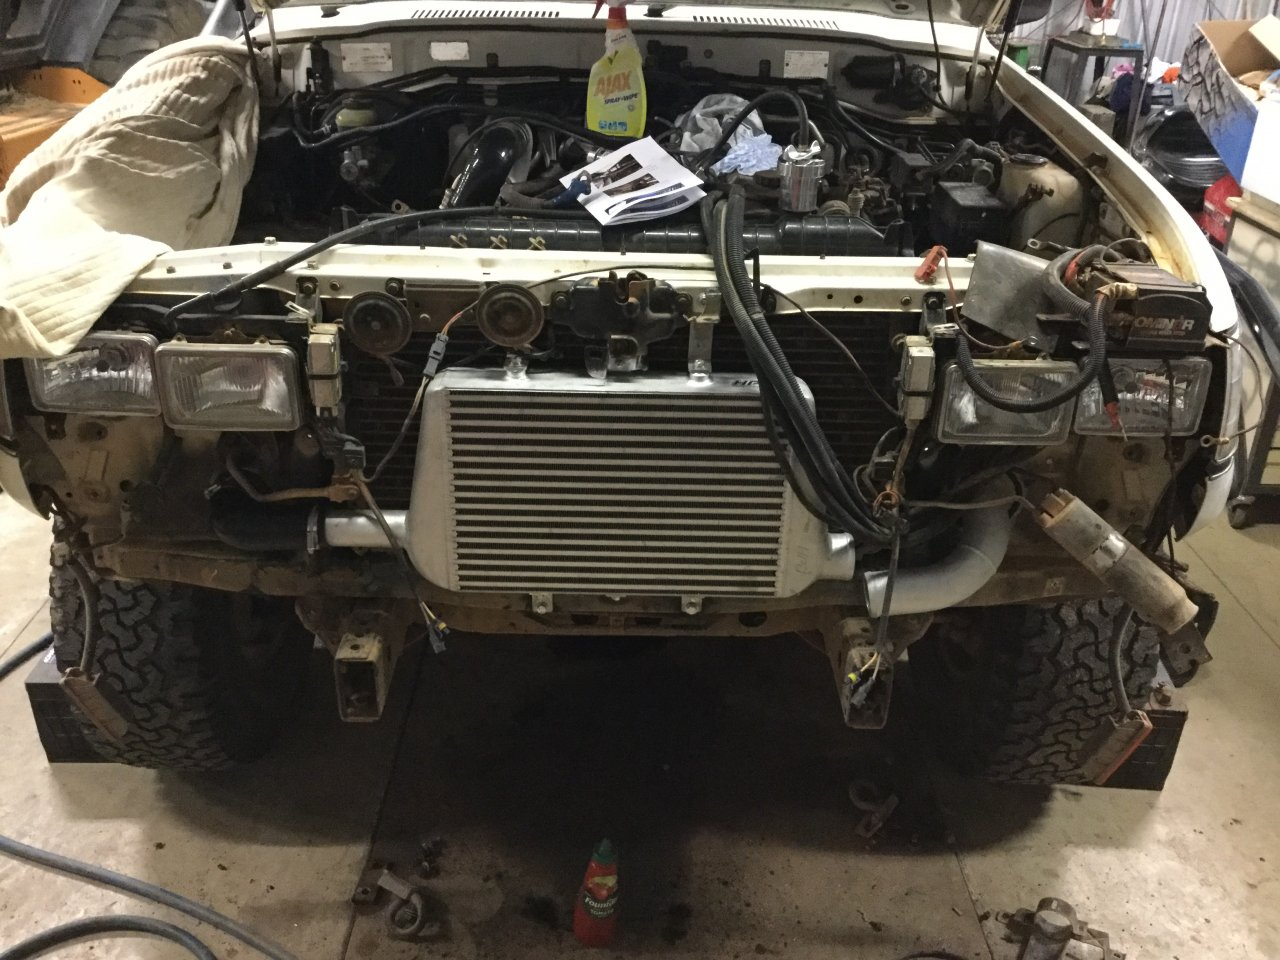 Stock 1hdtft upgrade to Gturbo Badboy or Grunter ? | IH8MUD Forum